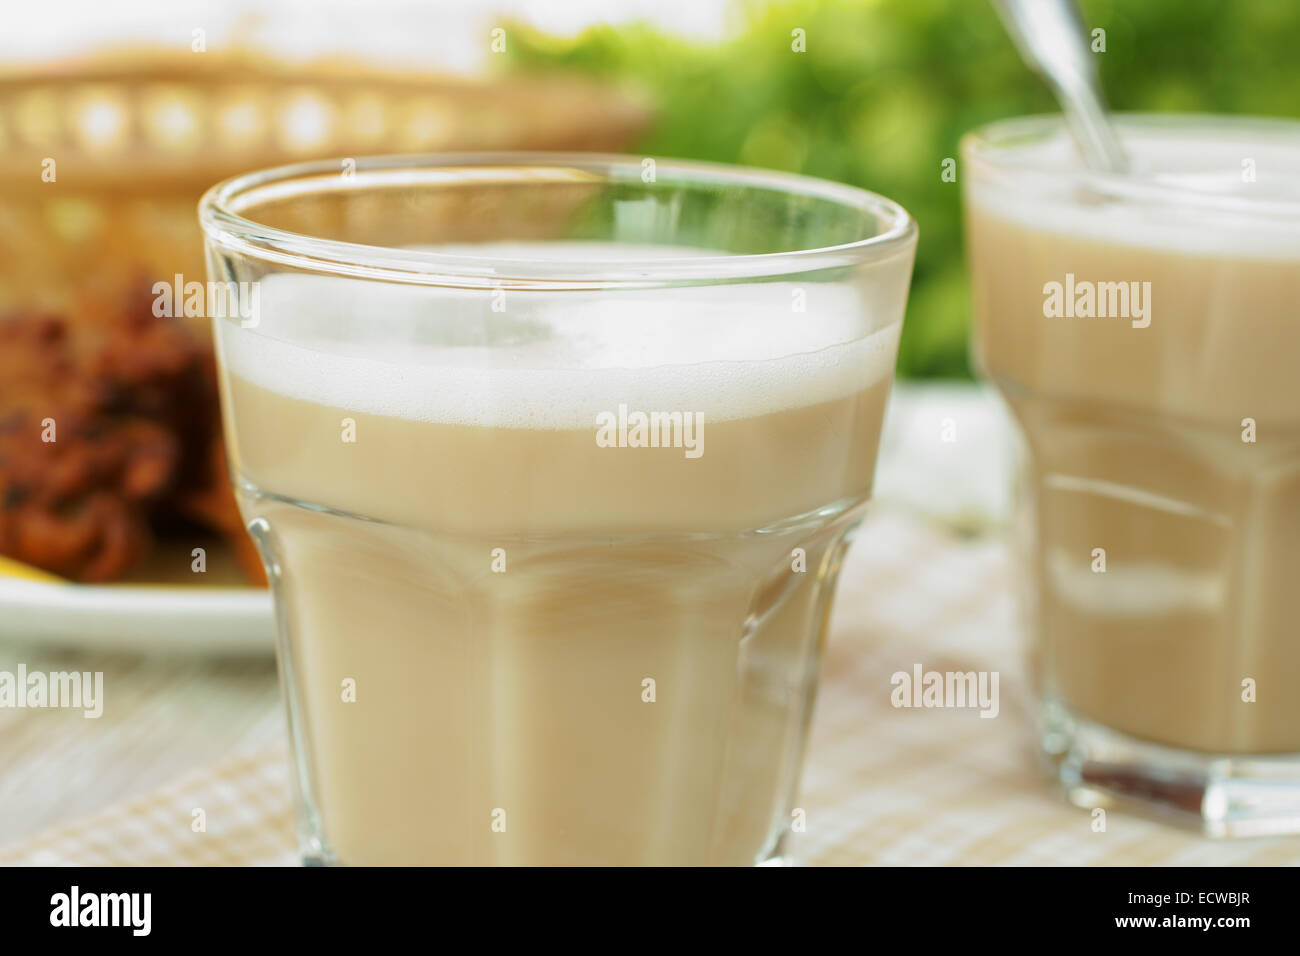 Indian Chai or black tea made with milk and various spices Stock Photo